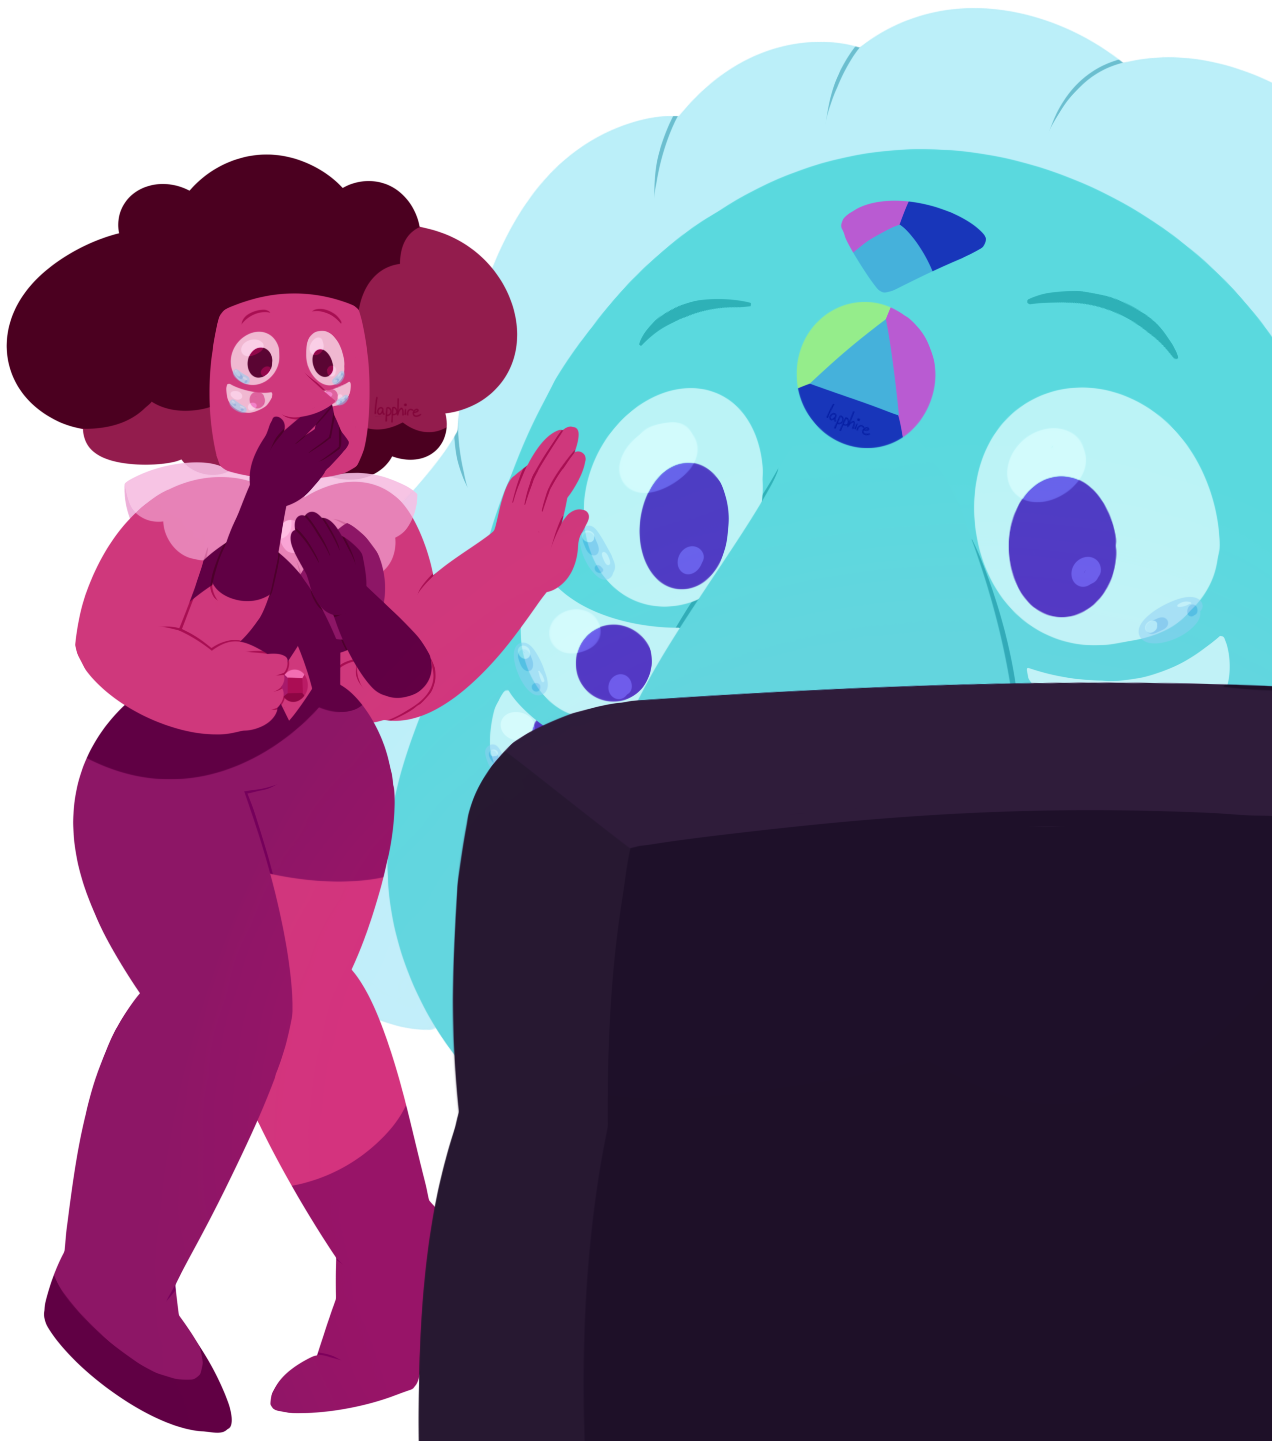 garnet must be a legend to the off-colors. a fusion that stood up against the diamonds, escaped being shattered, and was a major contributor to the rebellion imagine them meeting their idol